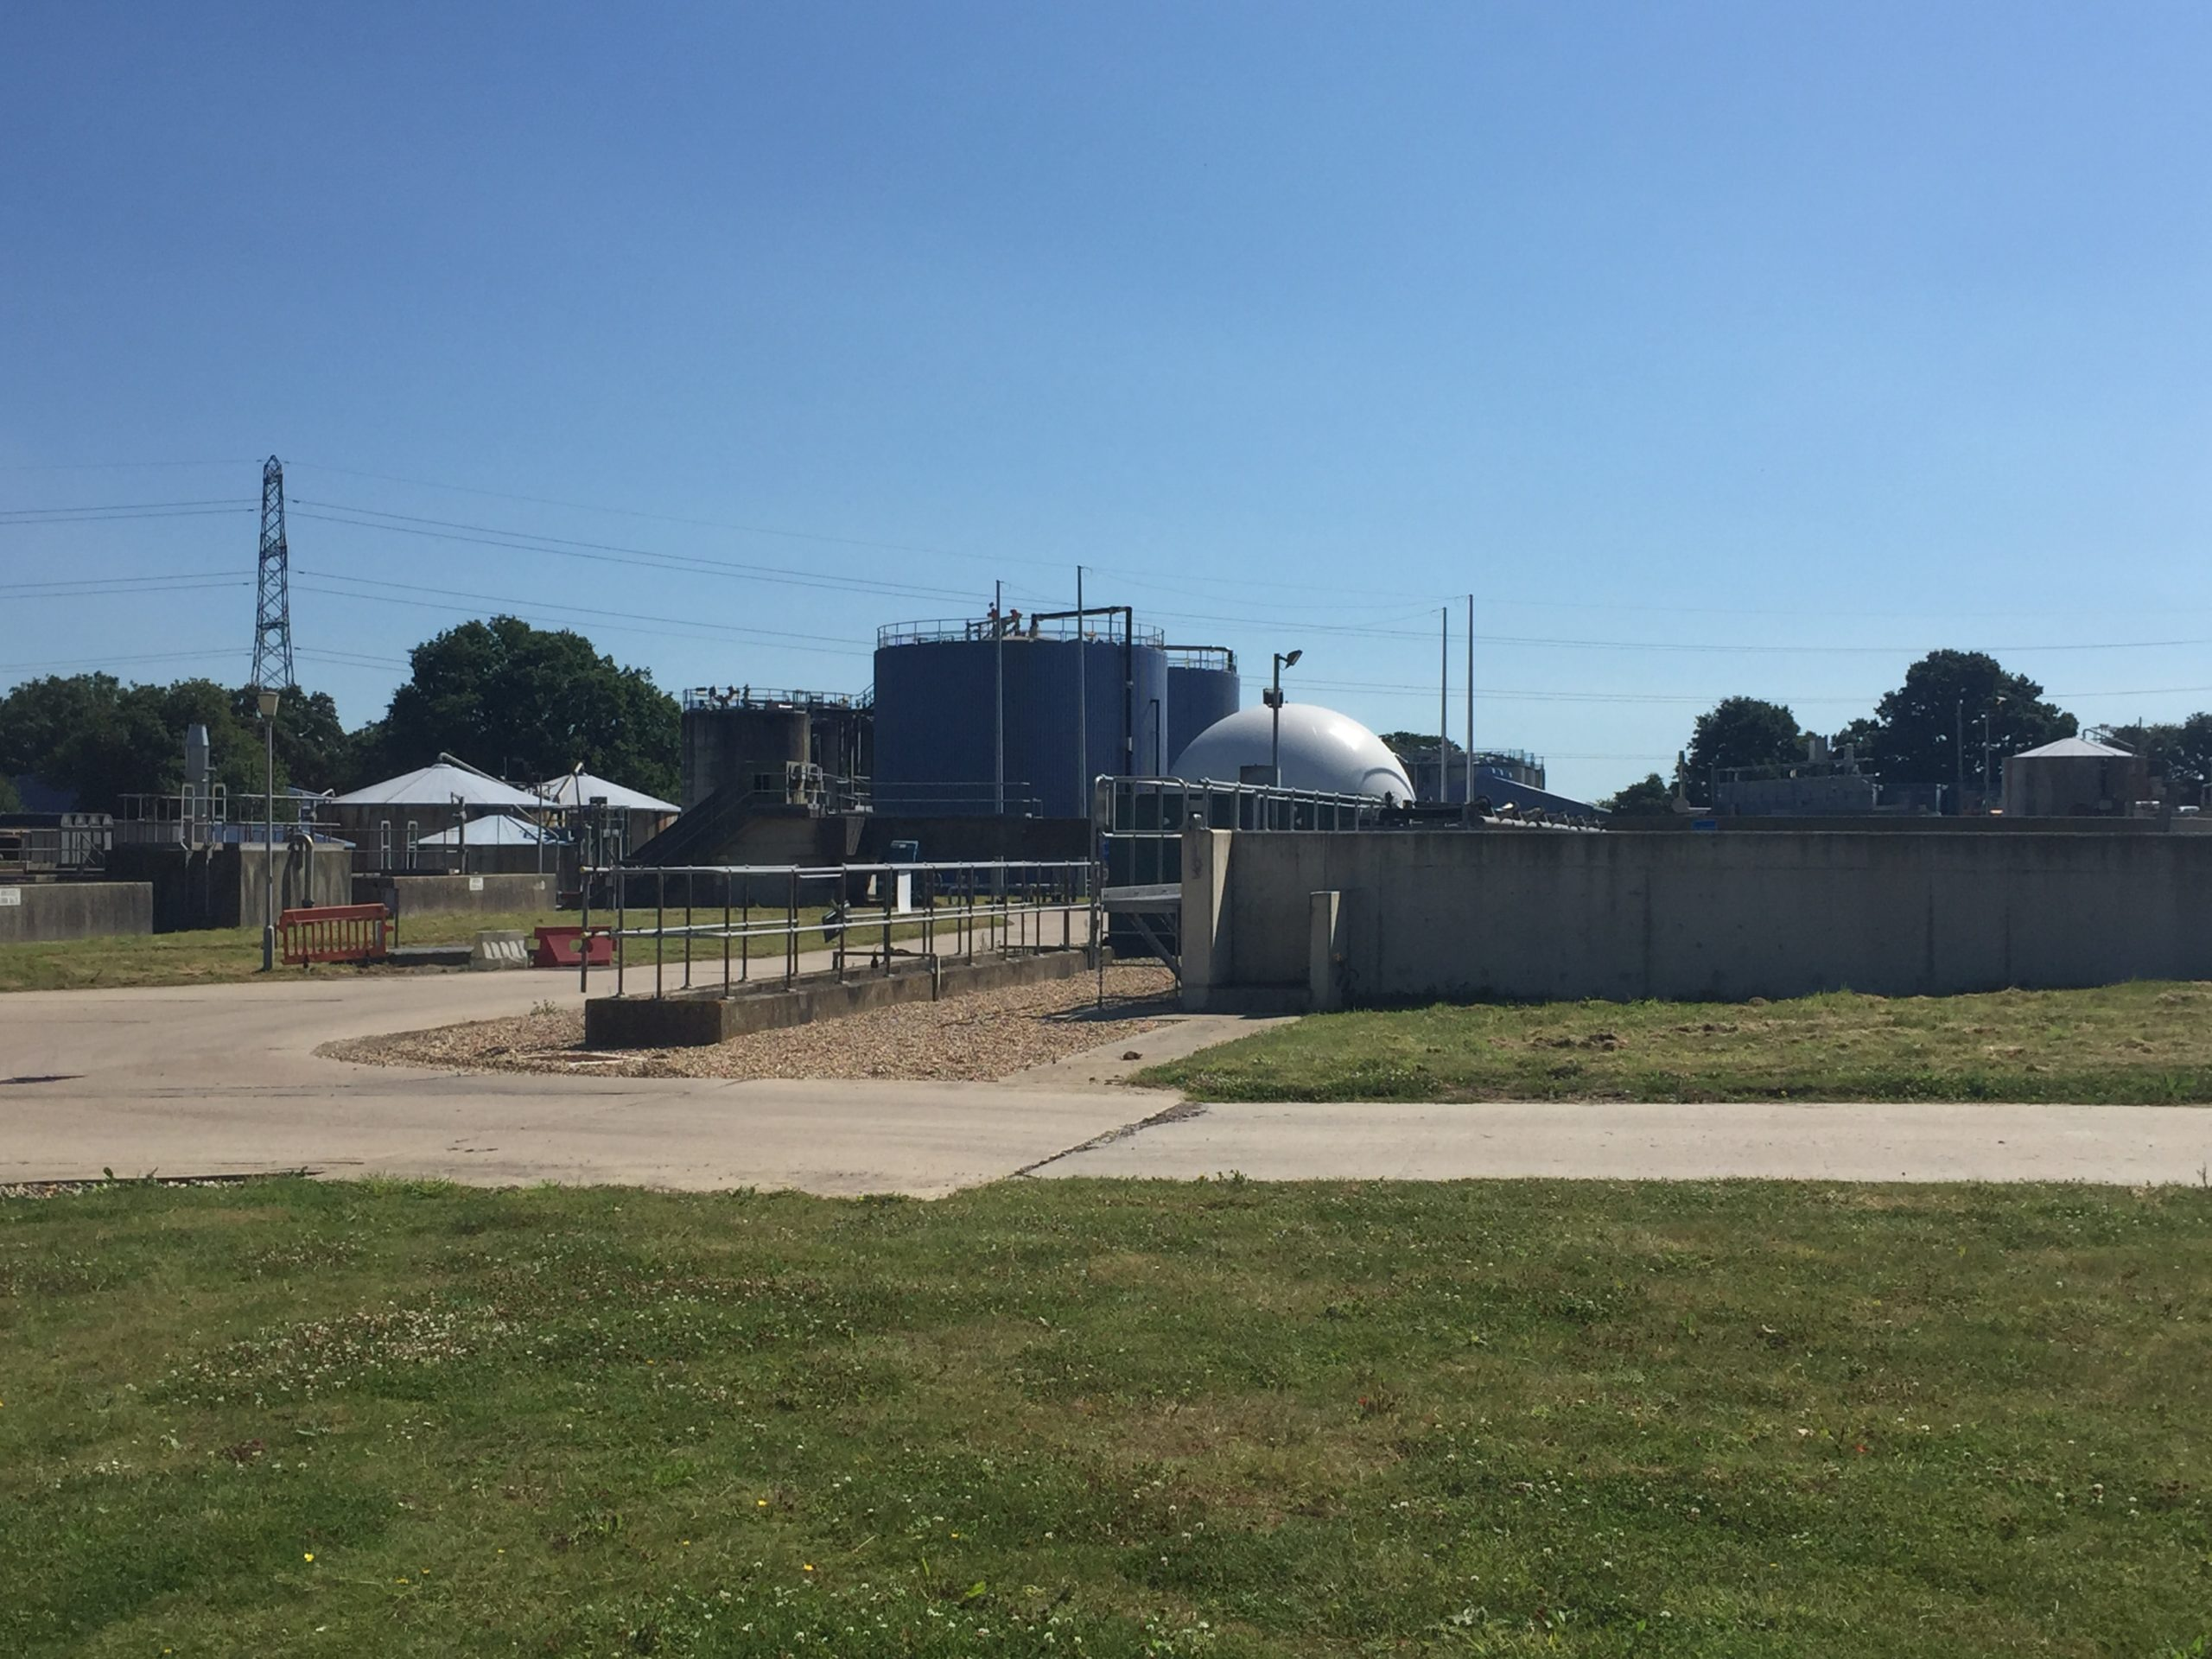 MEMBER'S PRESS RELEASE: Edina Wins Contract To Upgrade Sussex Southern Water CHP Plant